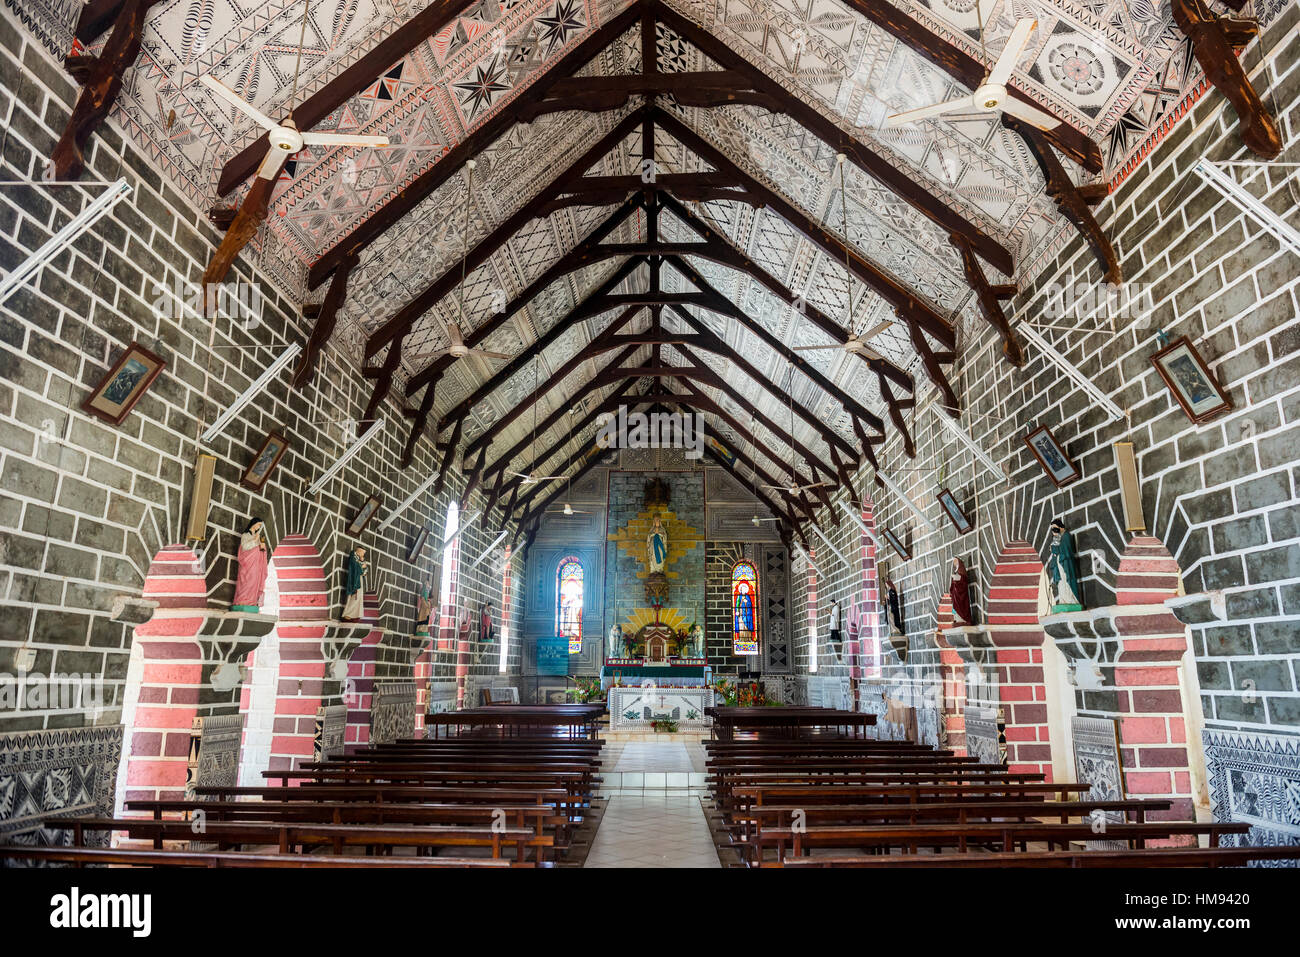 Bishop seat and church, Wallis, Wallis and Futuna, South Pacific, Pacific - Stock Image